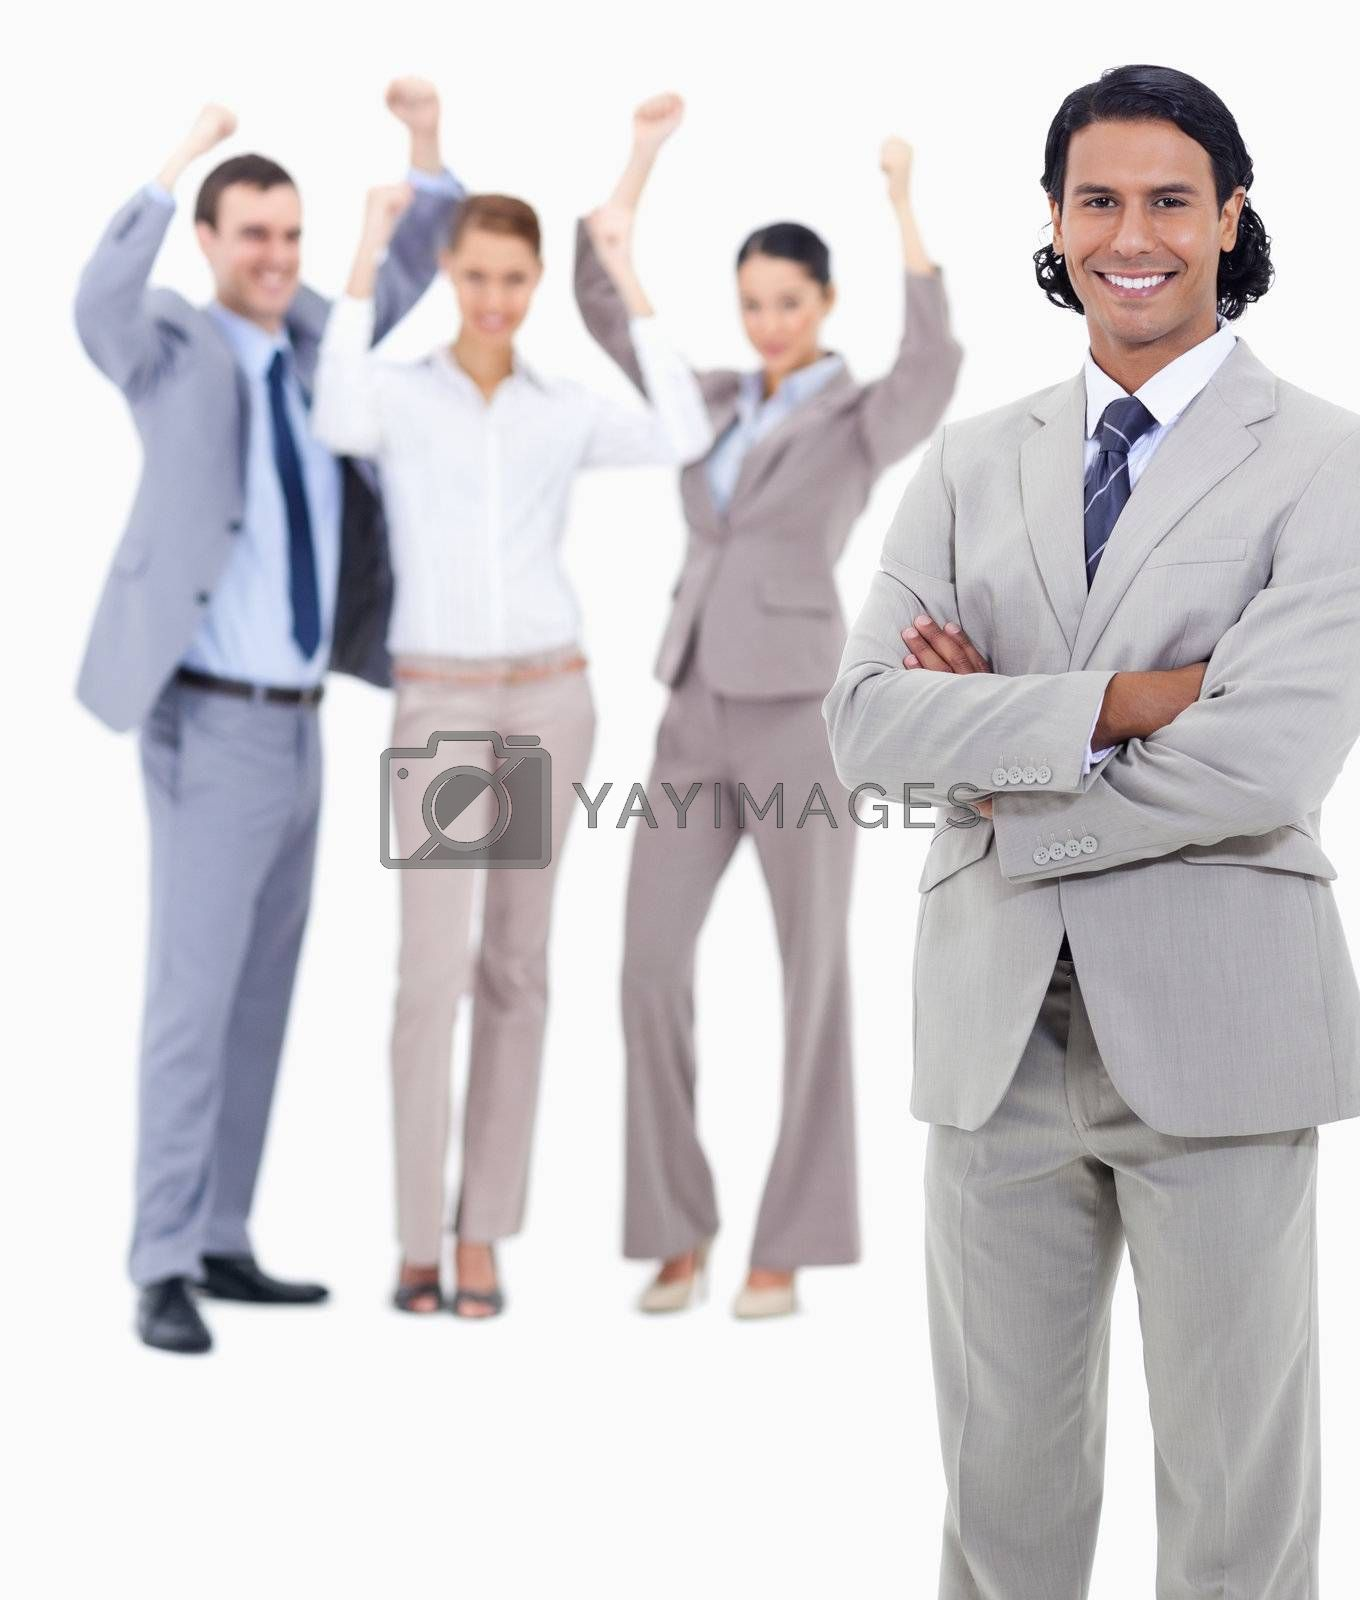 Small close-up of a businessman smiling and crossing his arms with enthusiastic people behind him against white background